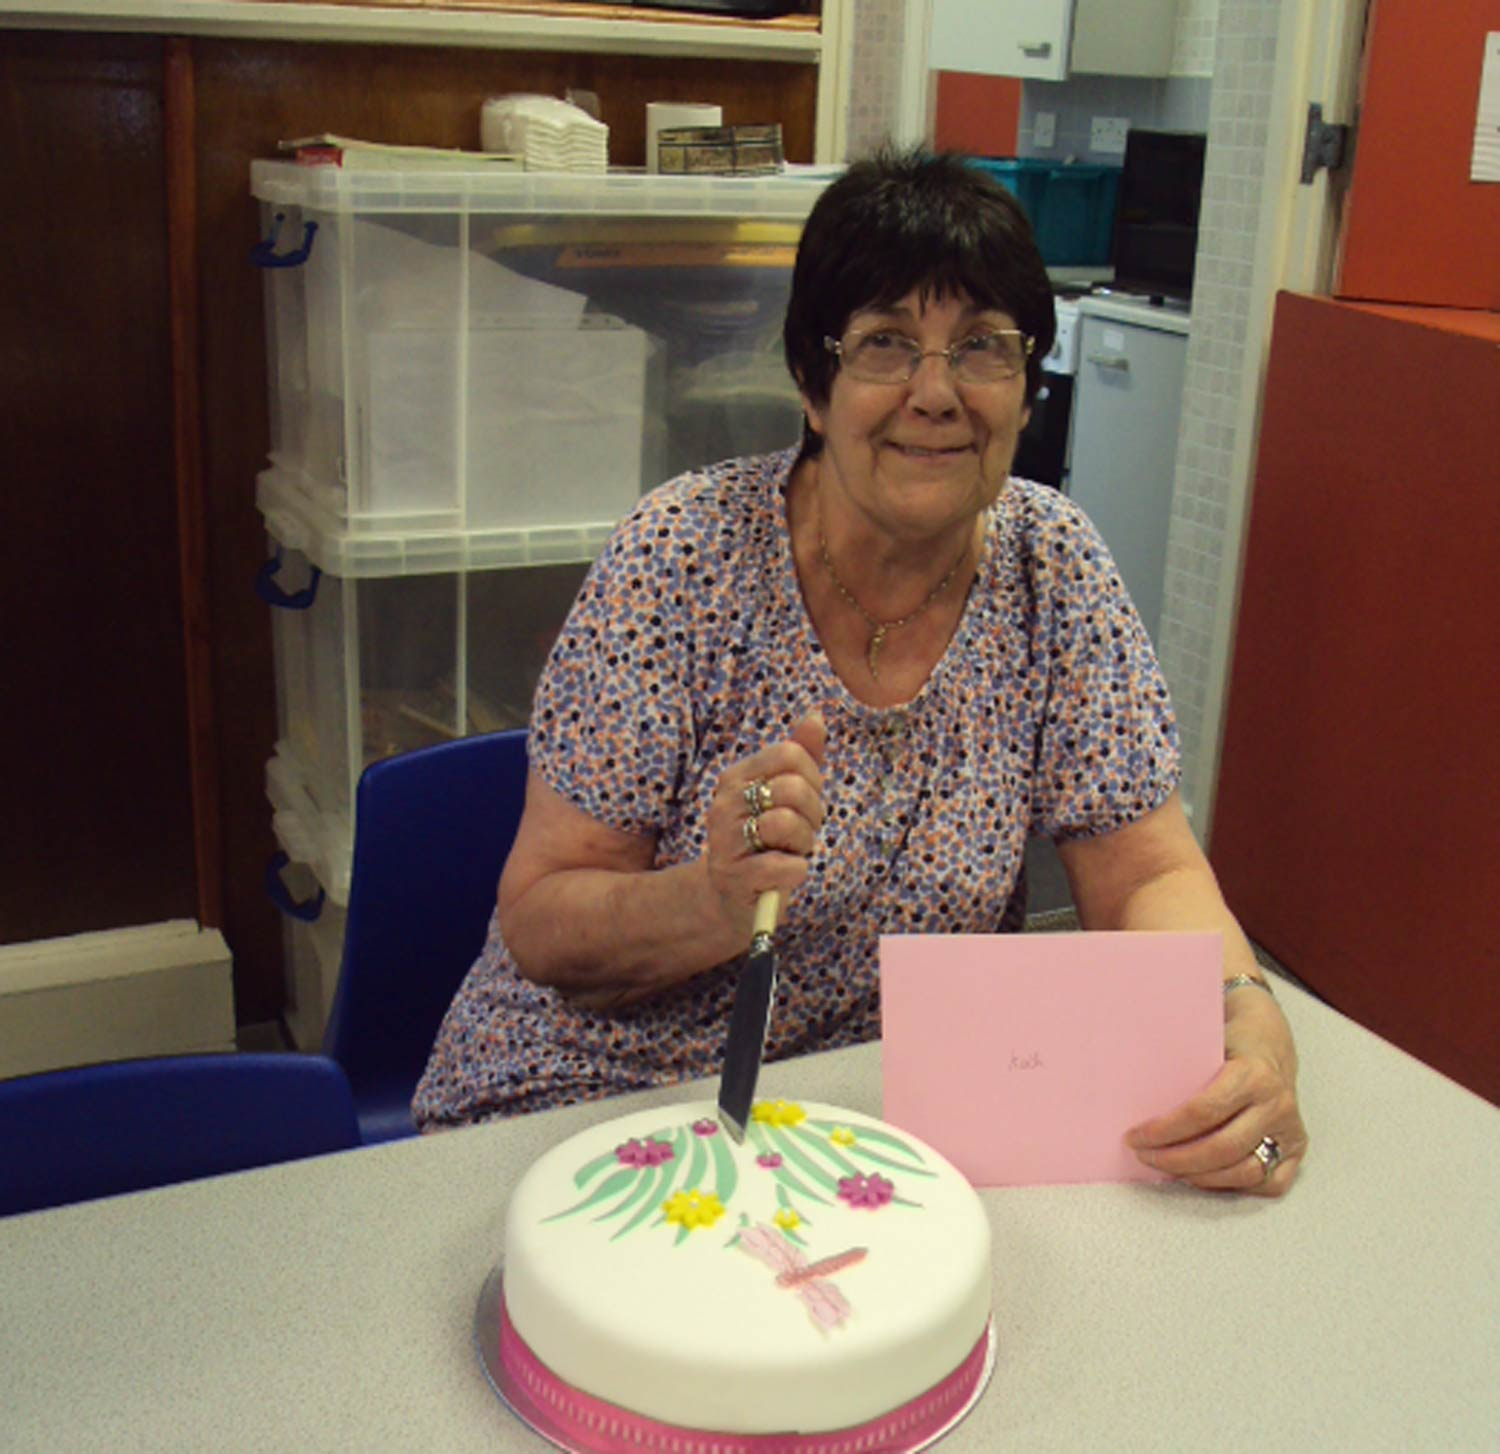 Kath O'Brien long-standing member of  Ripon YMCA retires